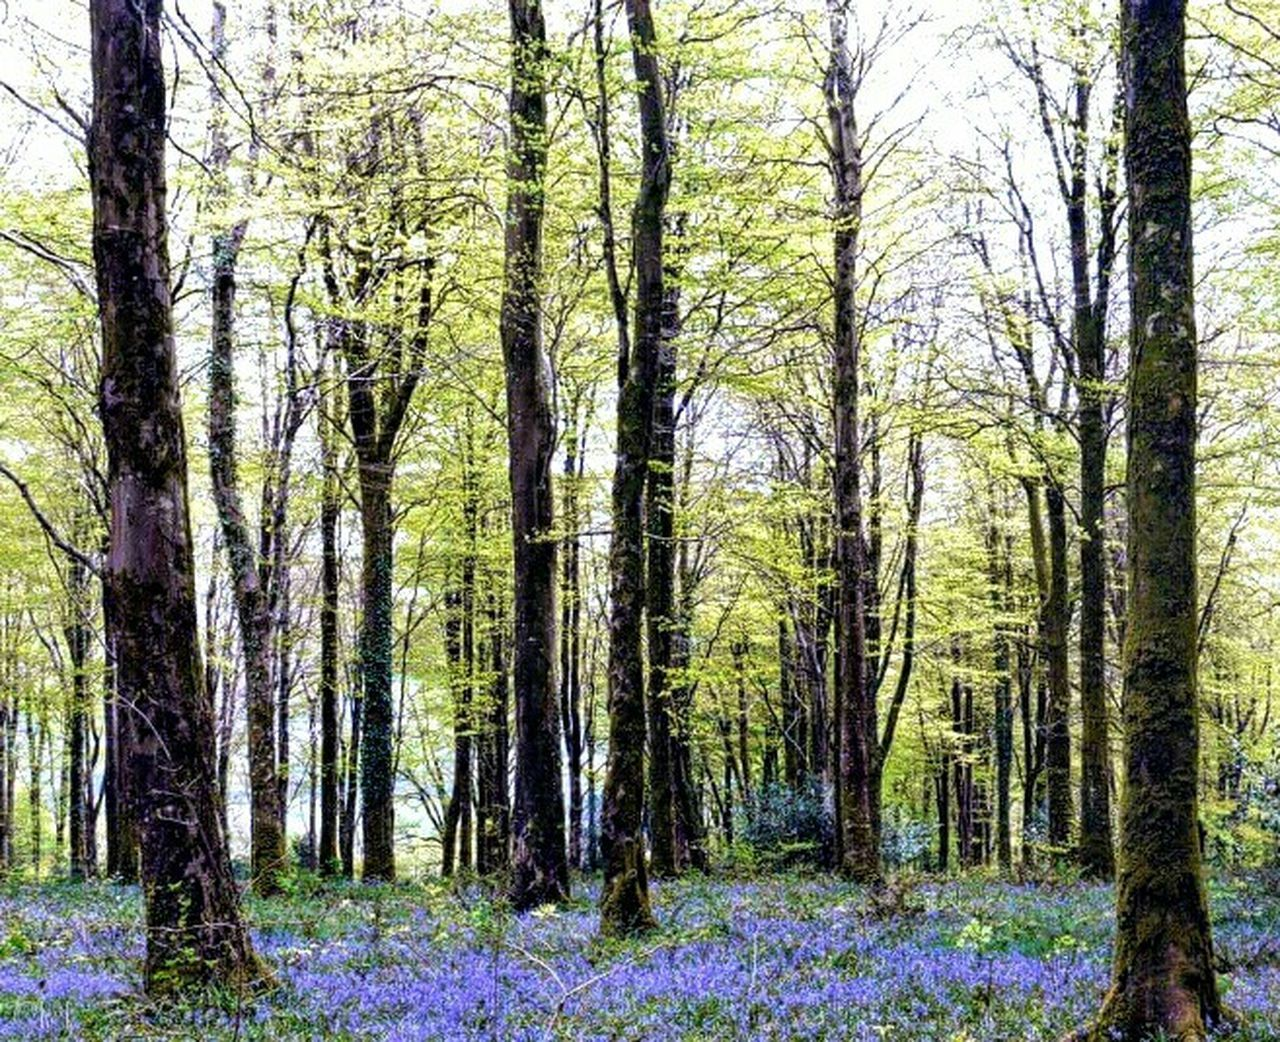 Bluebells at Lanhydrock Showcase May Femalephotographerofthemonth Ladyphotographerofthemonth The Great Outdoors With Adobe EyeEm Nature Lover Beauty In Nature Greenery Trees WoodLand Bluebell Wood Nature The Great Outdoors Cornwall Flowers Blue Flowers Spring Flowers The Essence Of Summer